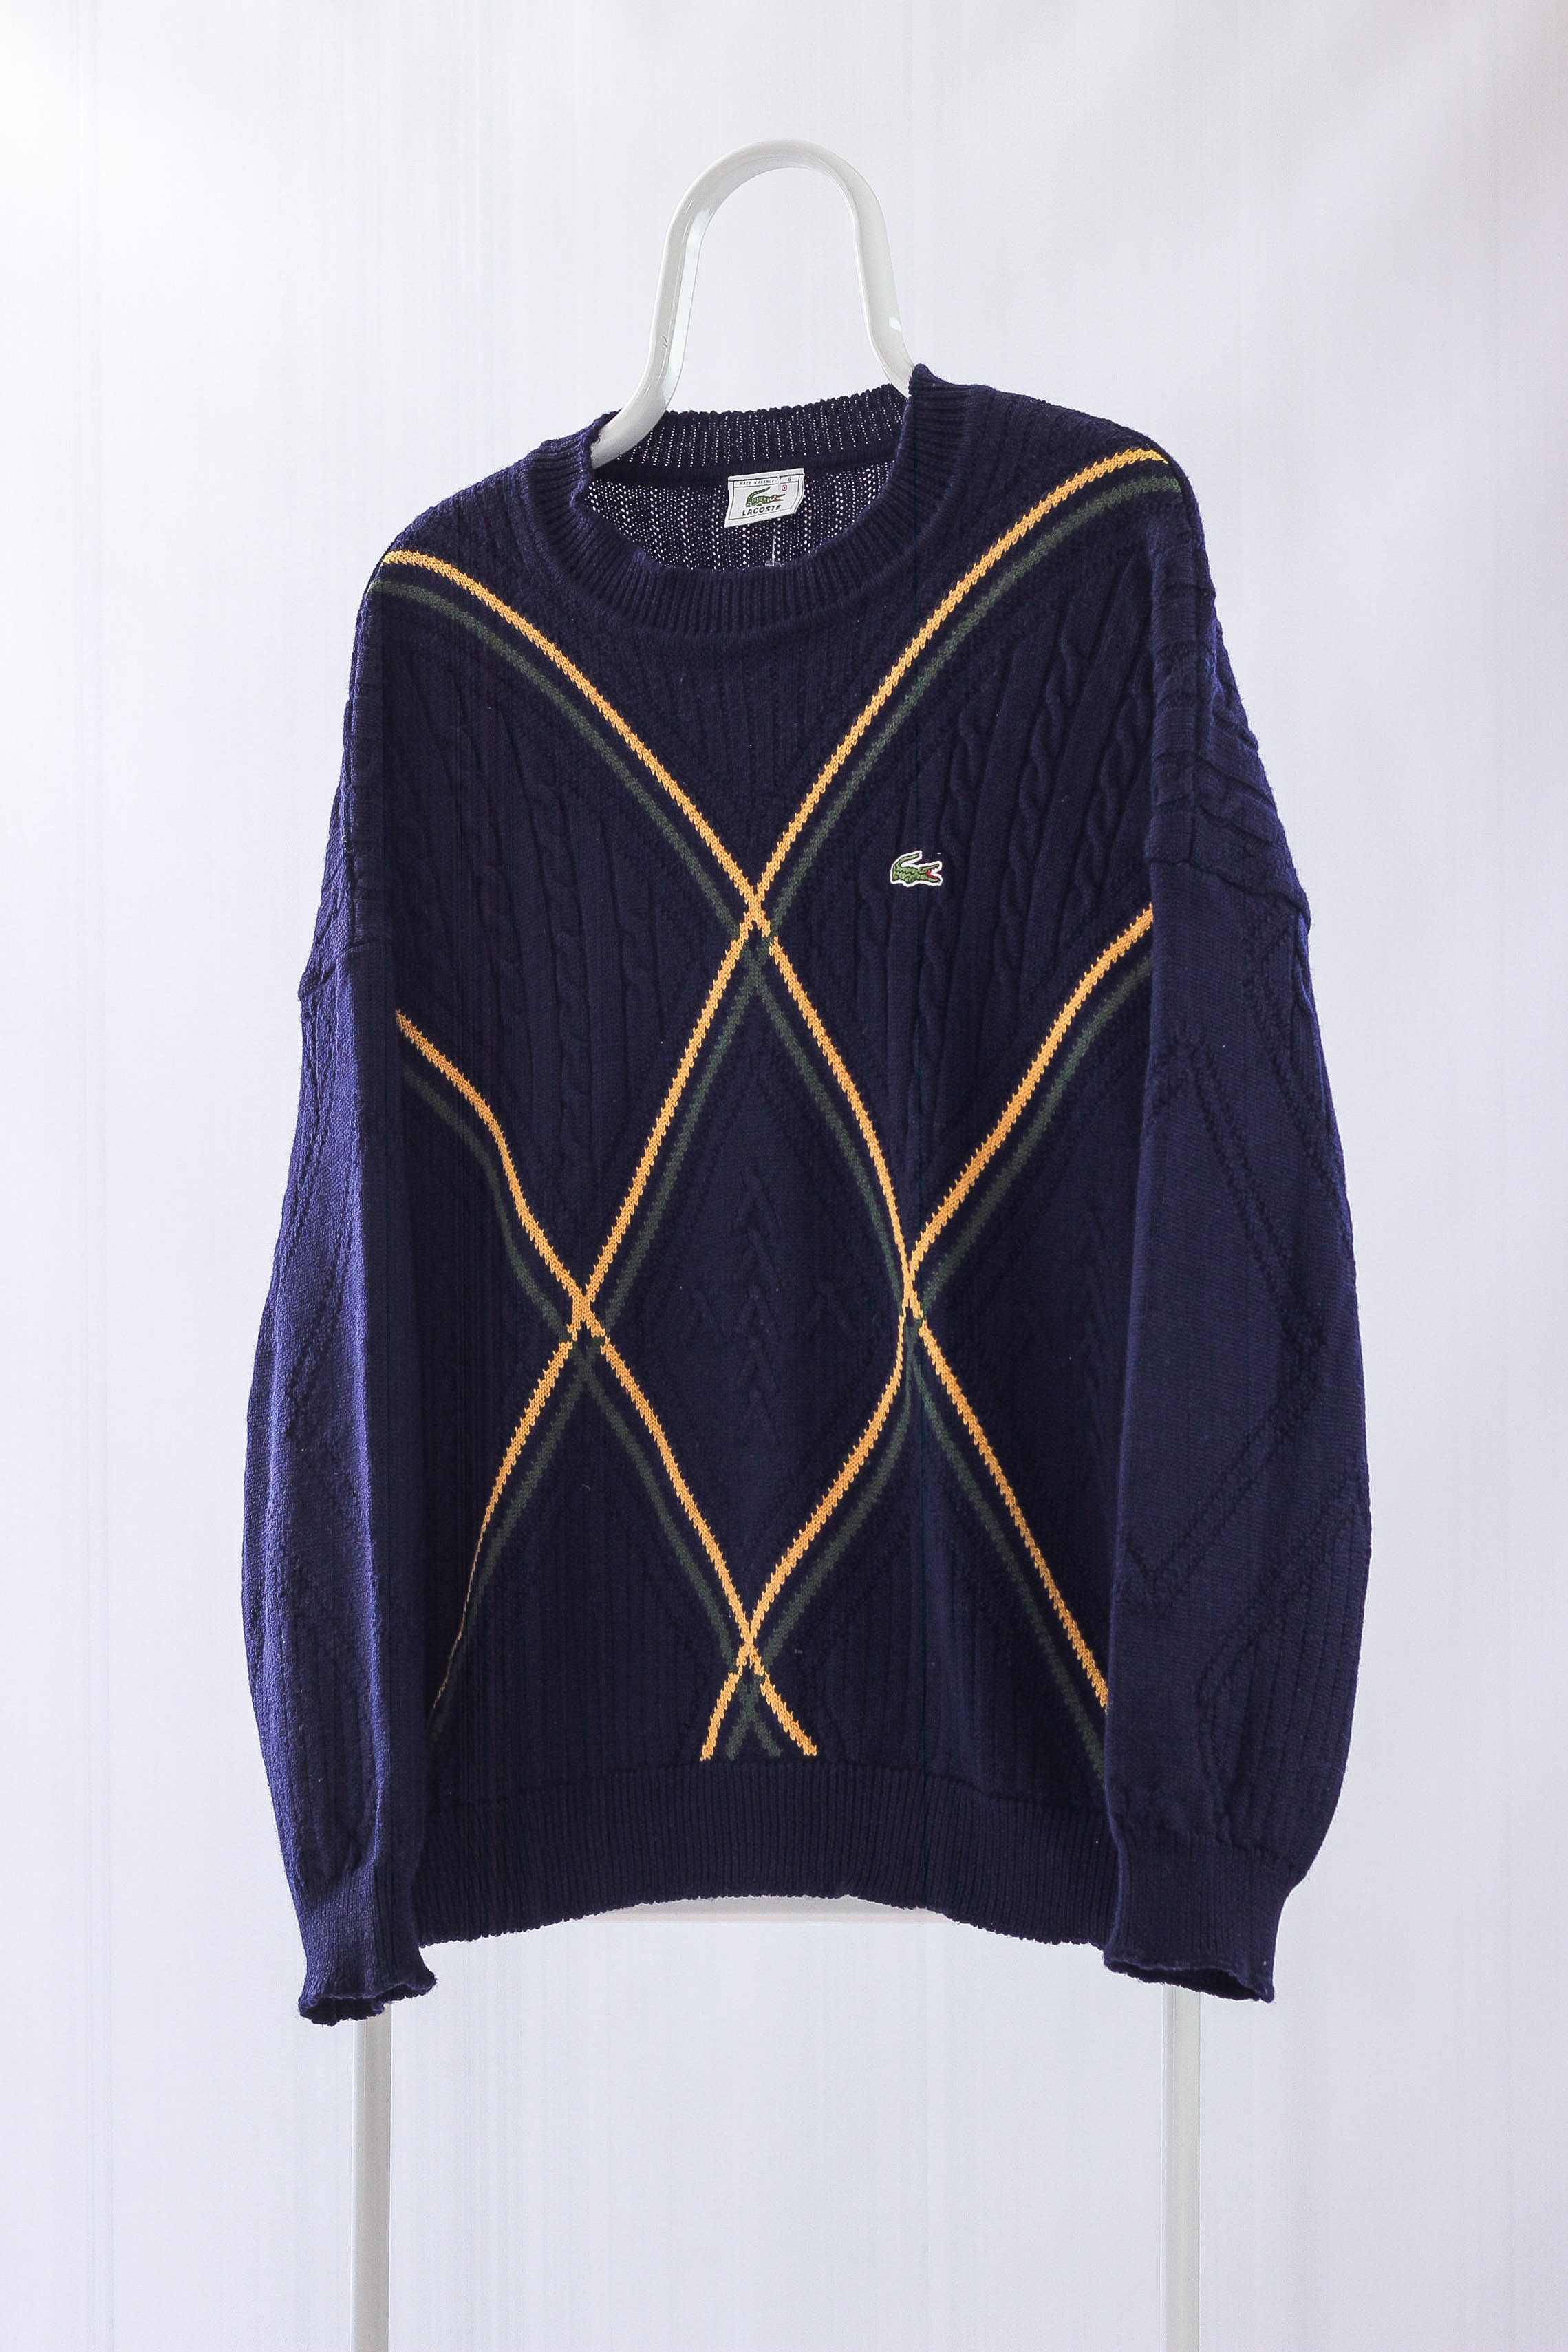 8ba96f3a2f3 Vintage Mens LACOSTE Logo Cable Knit Jumper Sweater